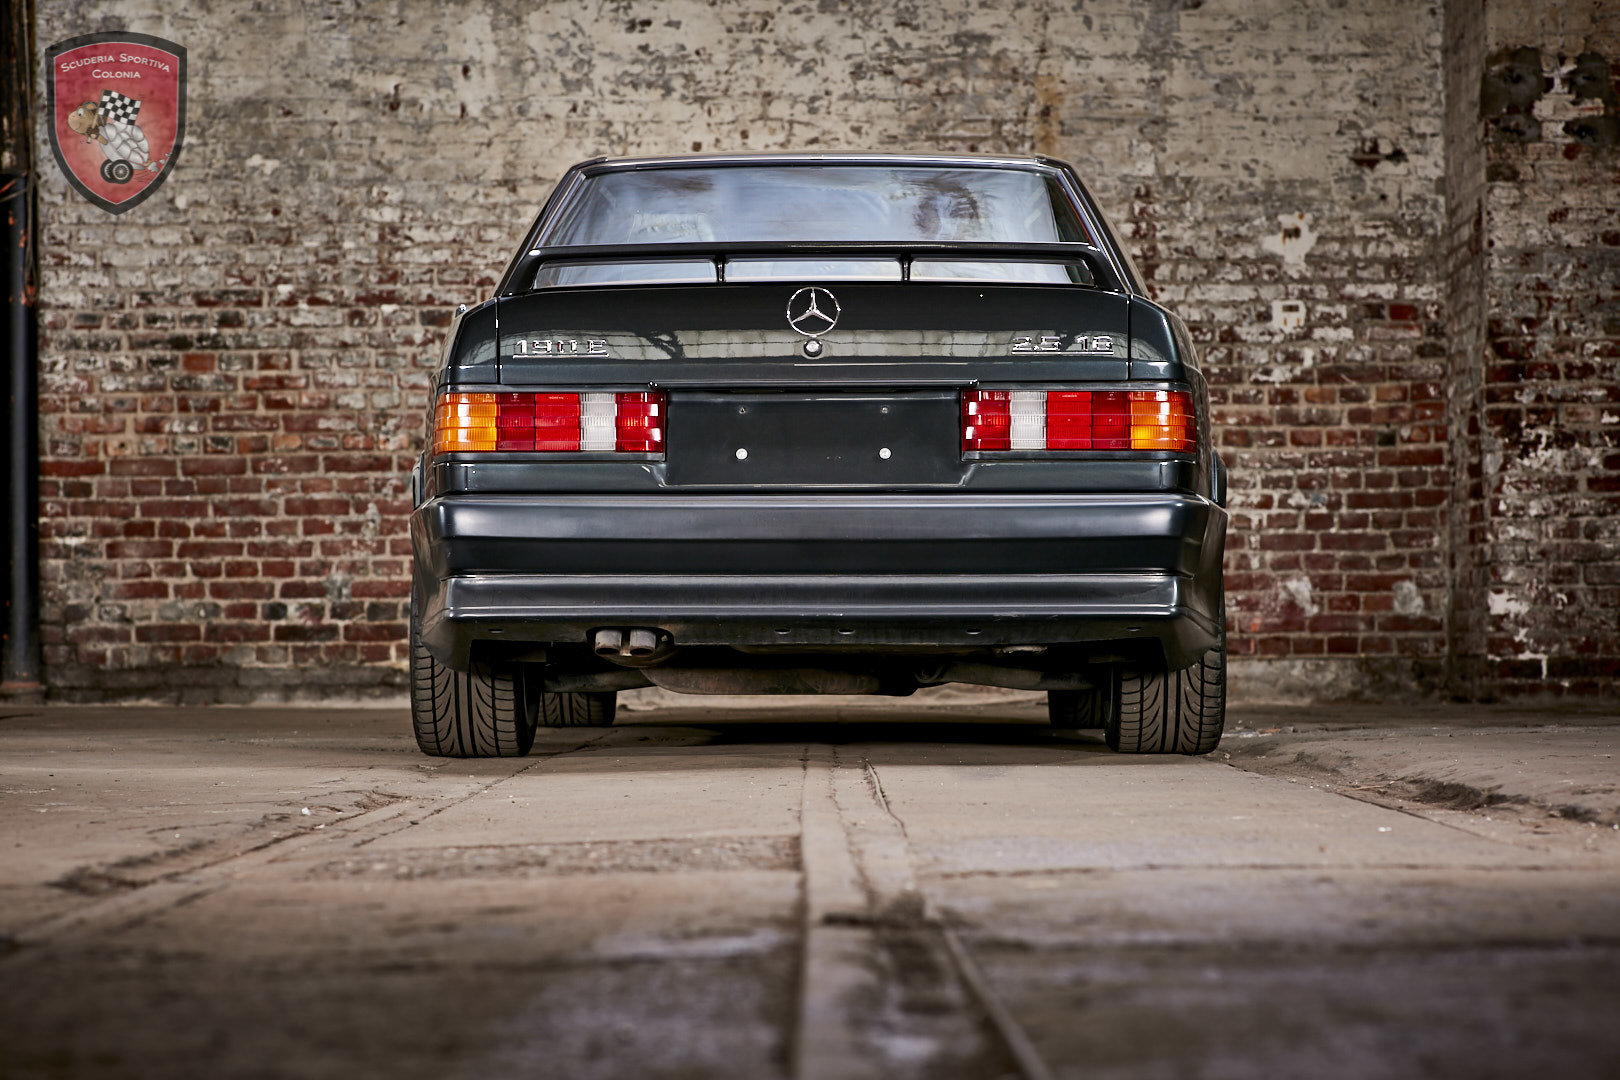 1990 Mercedes Benz 190 E  2.5   16 V For Sale (picture 9 of 12)